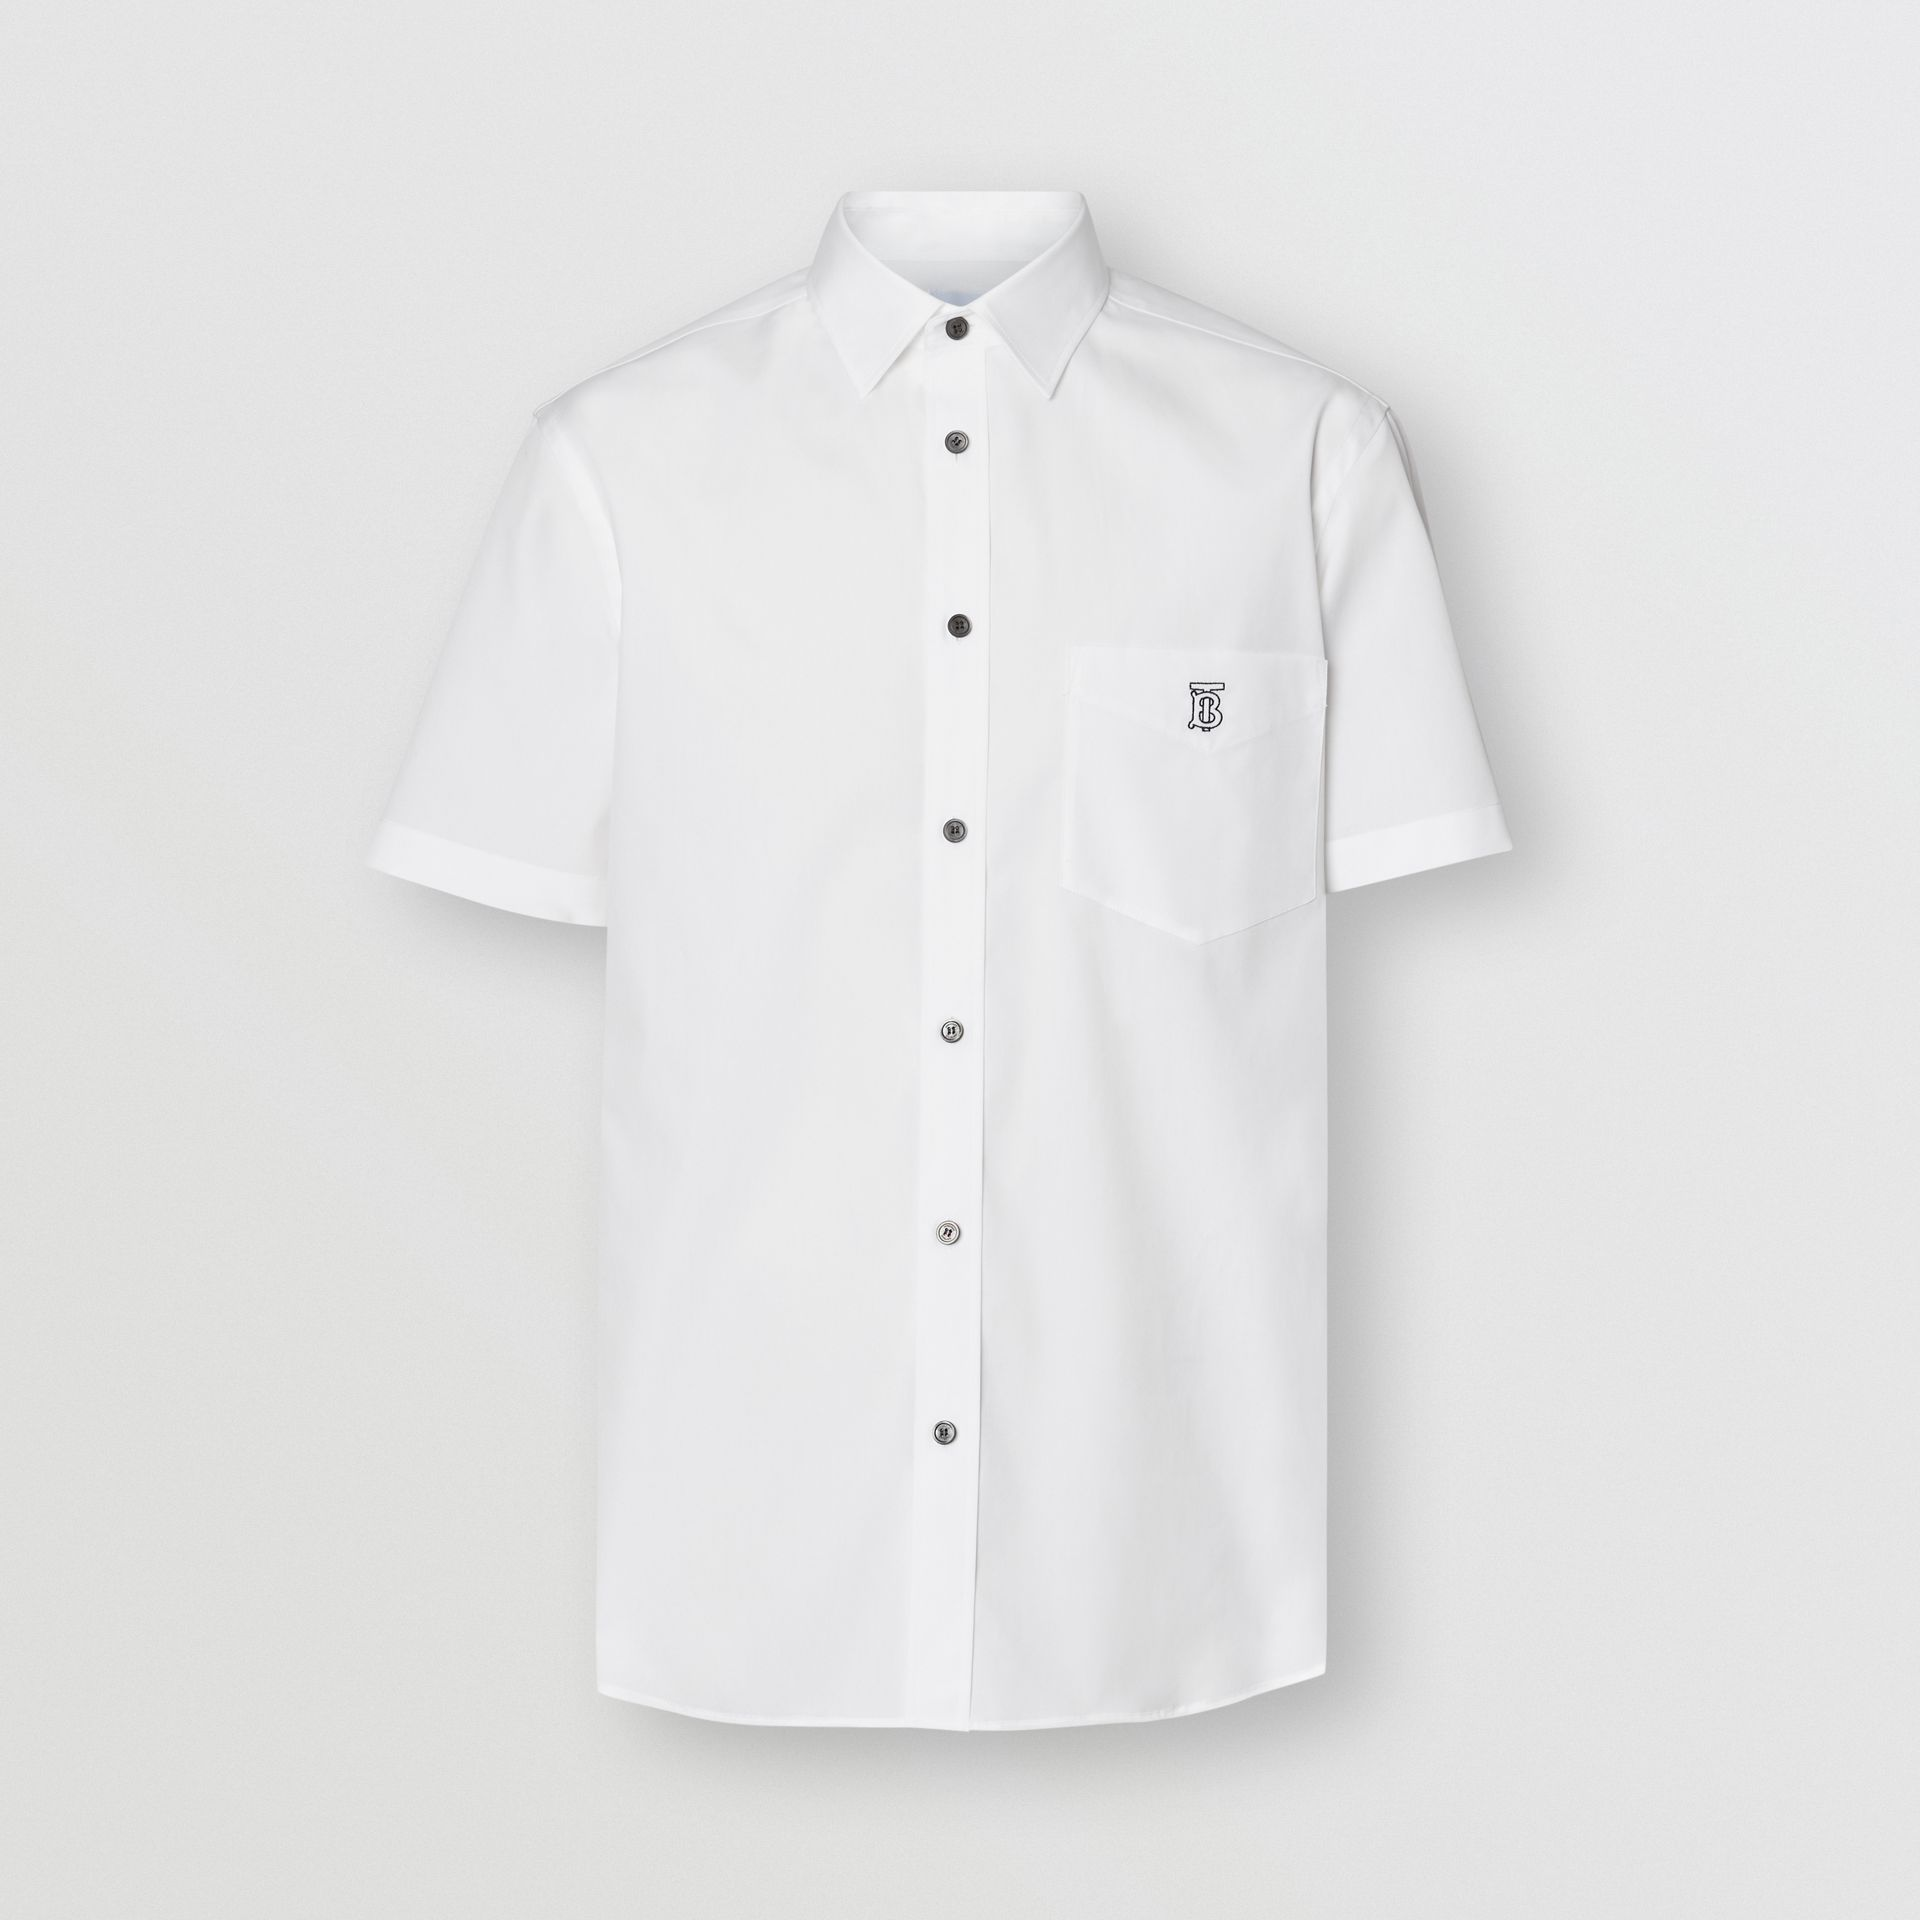 Short-sleeve Monogram Motif Stretch Cotton Shirt in White - Men | Burberry - gallery image 3